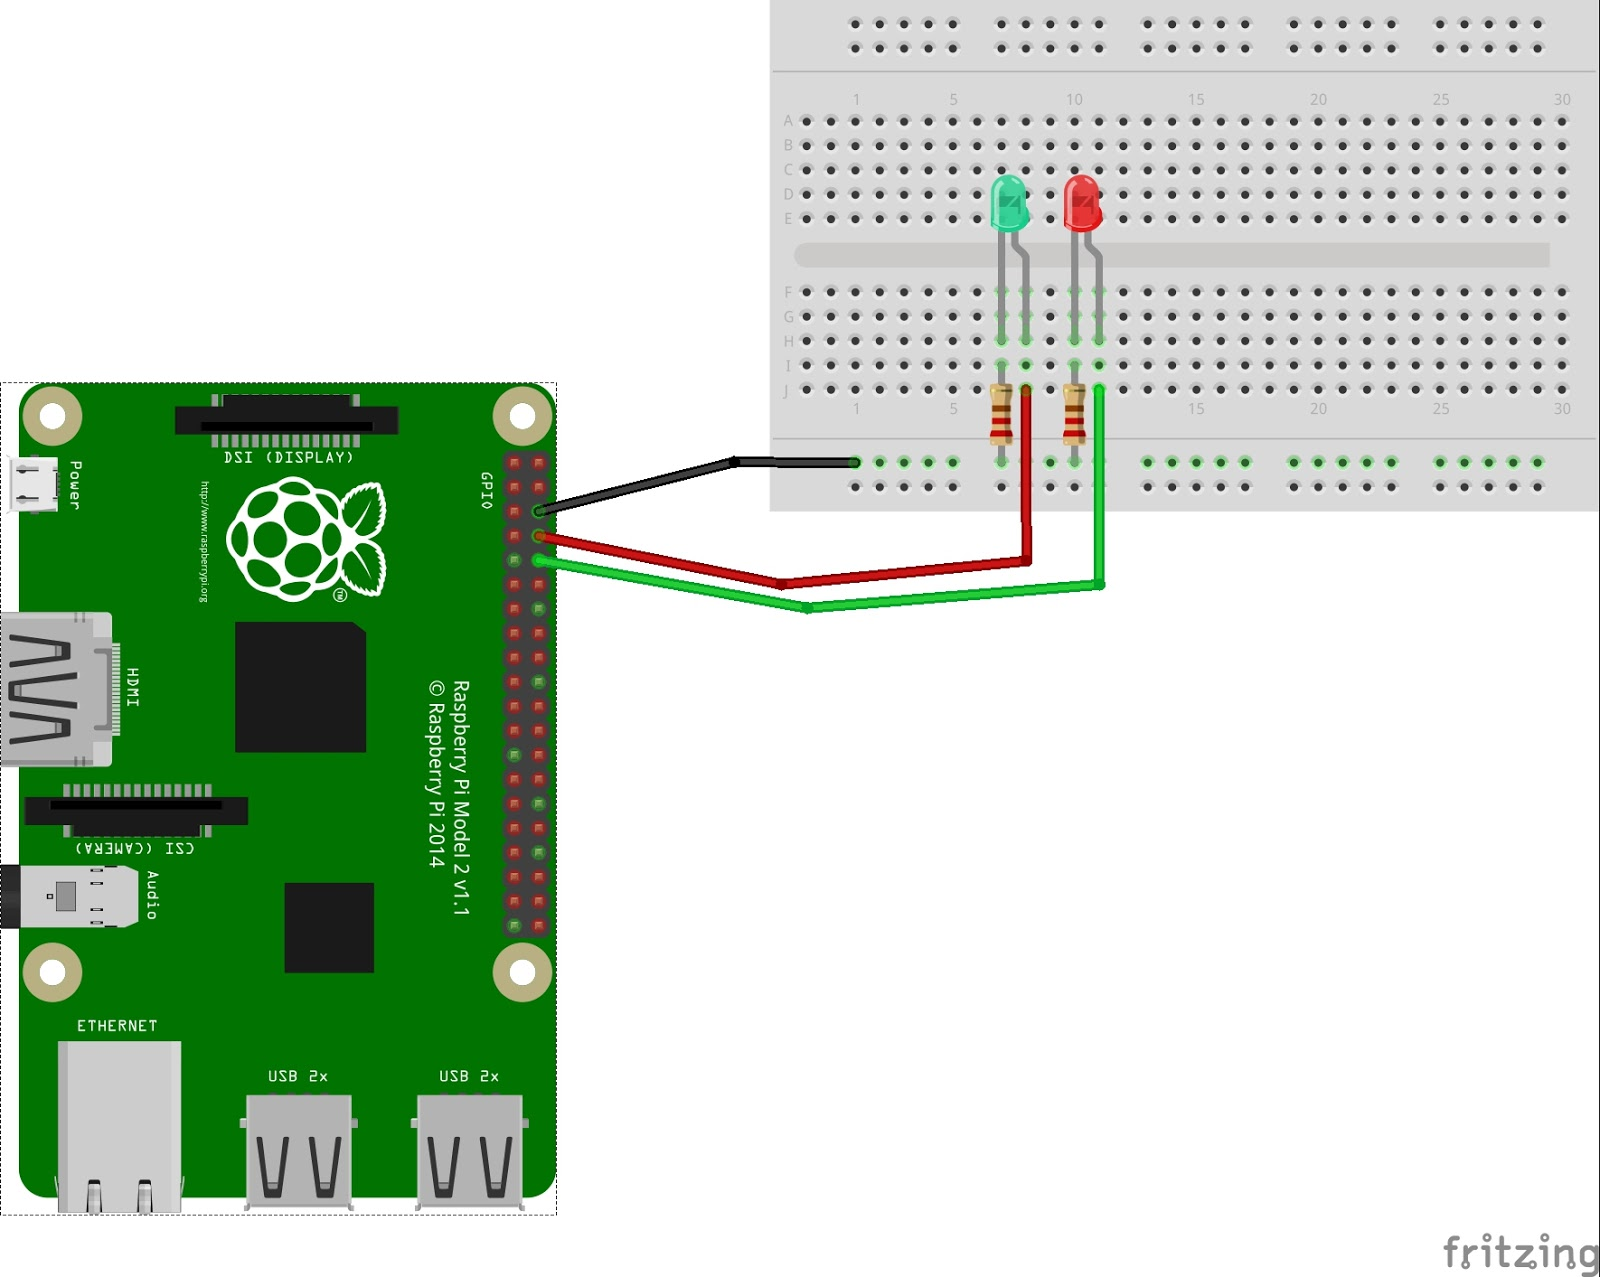 Led Leuchten Raspberry Pi Iot Remotely Control The Led In Raspberry Pi 2 Using